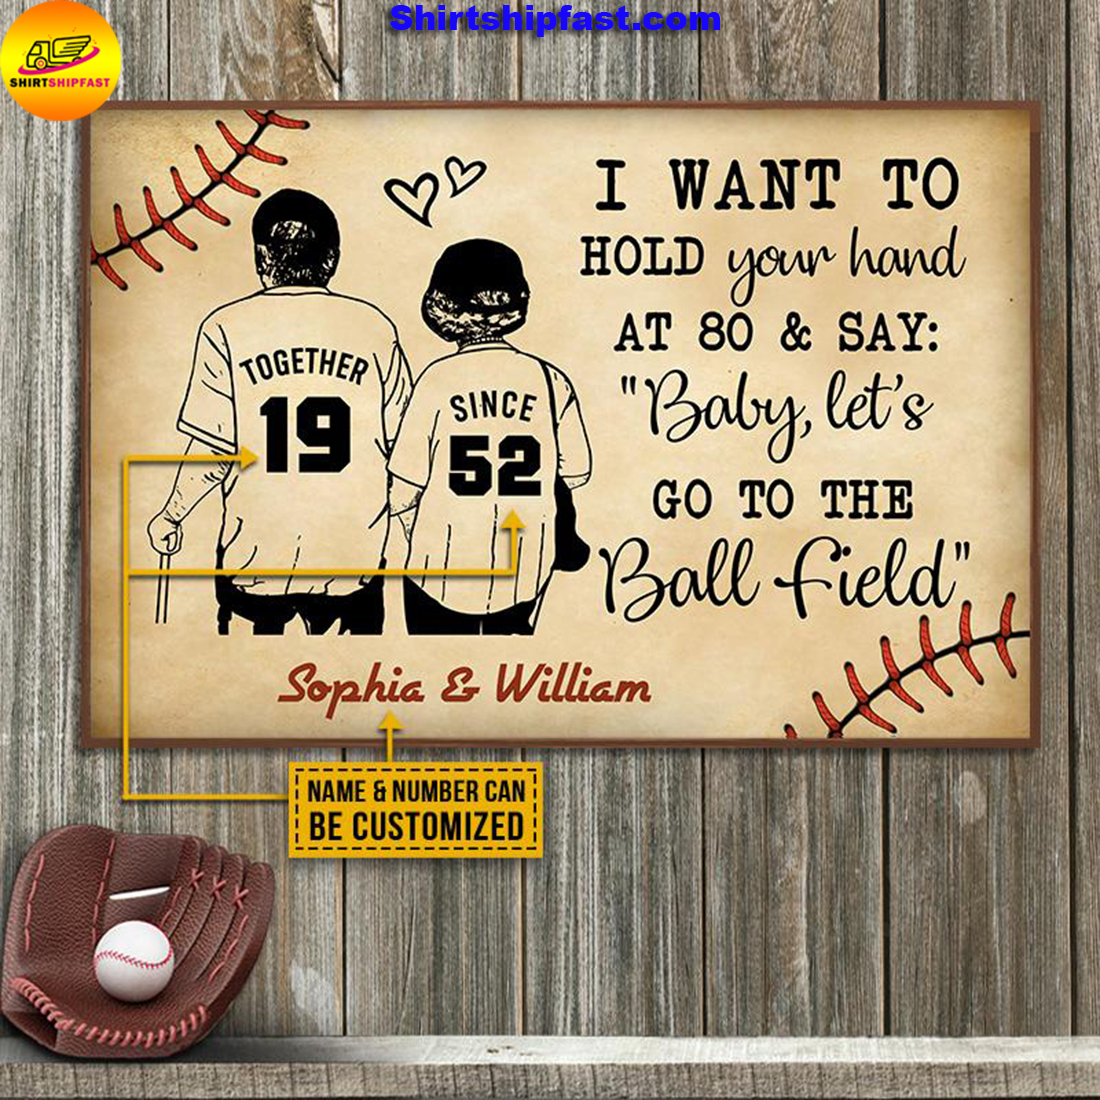 Personalized Baseball Yellow Since Together Customized Poster - Picture 1